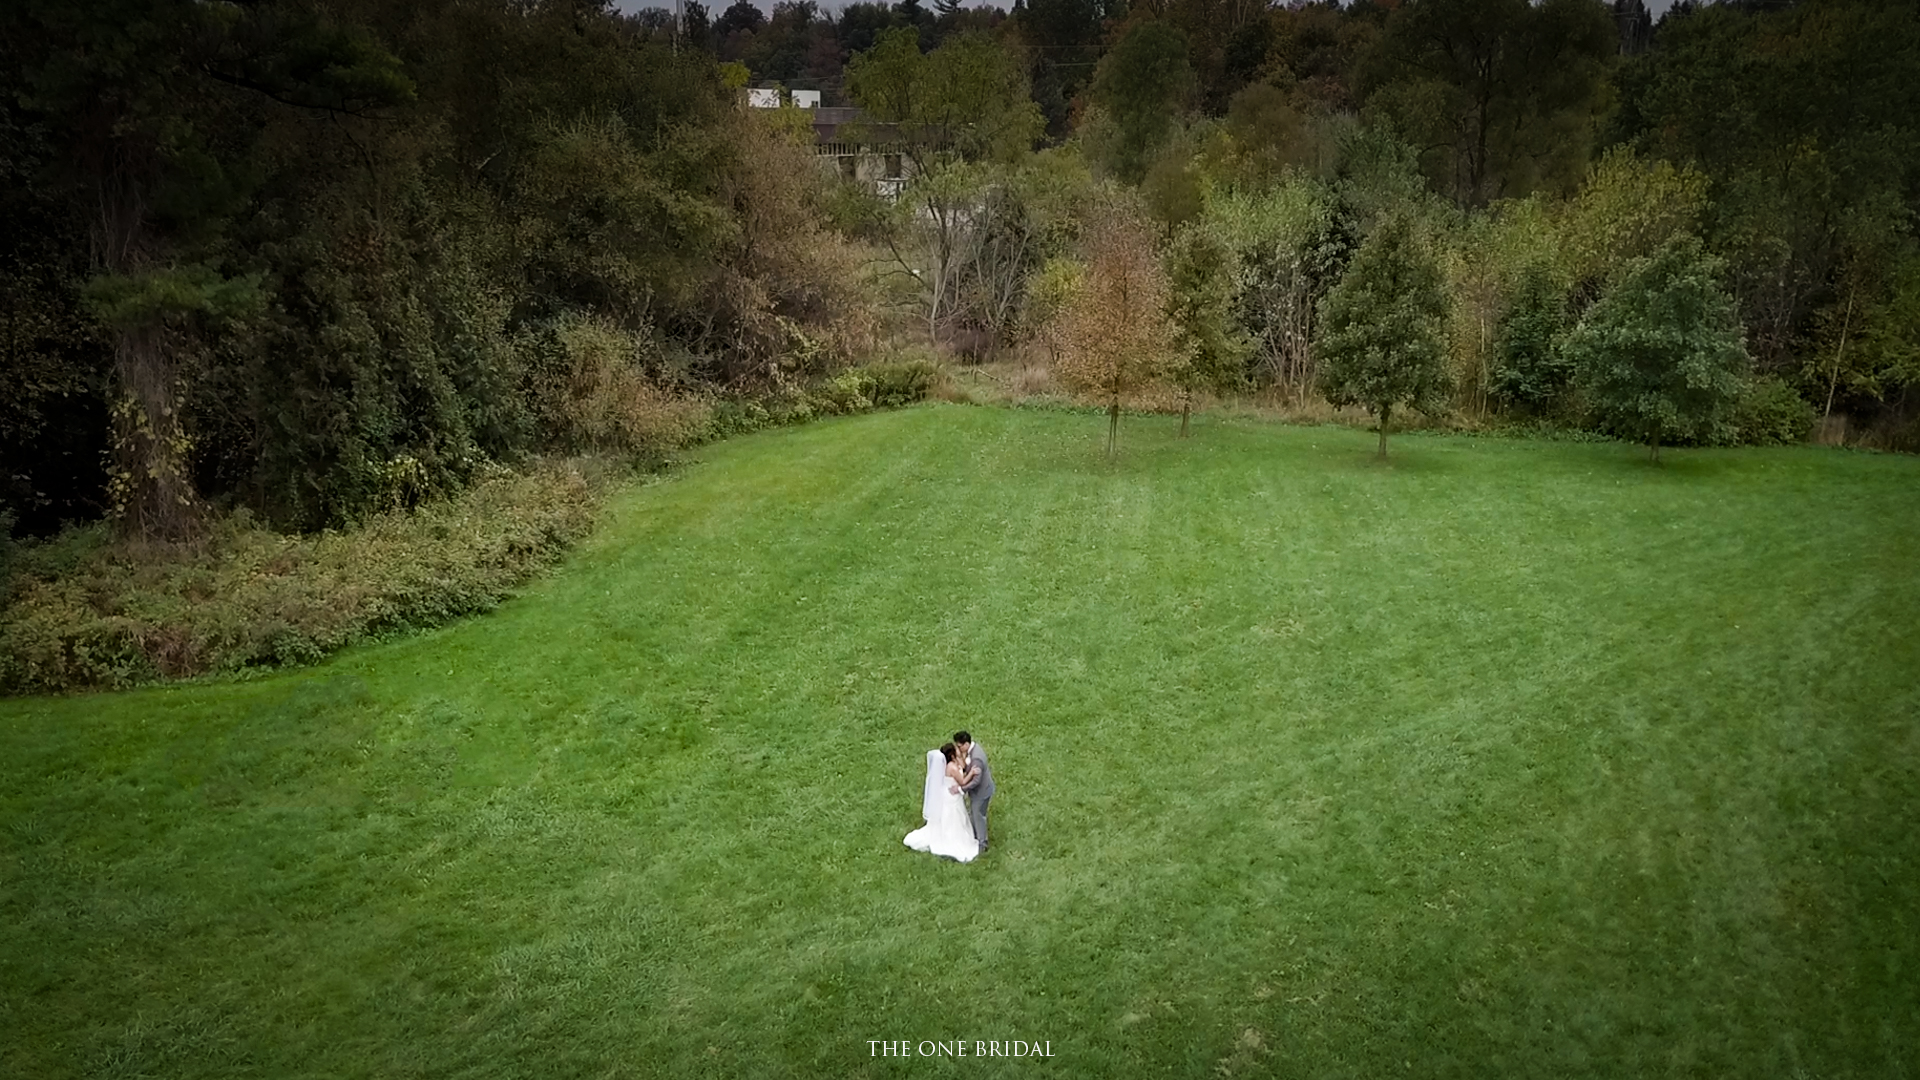 Wedding Drone Photo | THE ONE BRIDAL